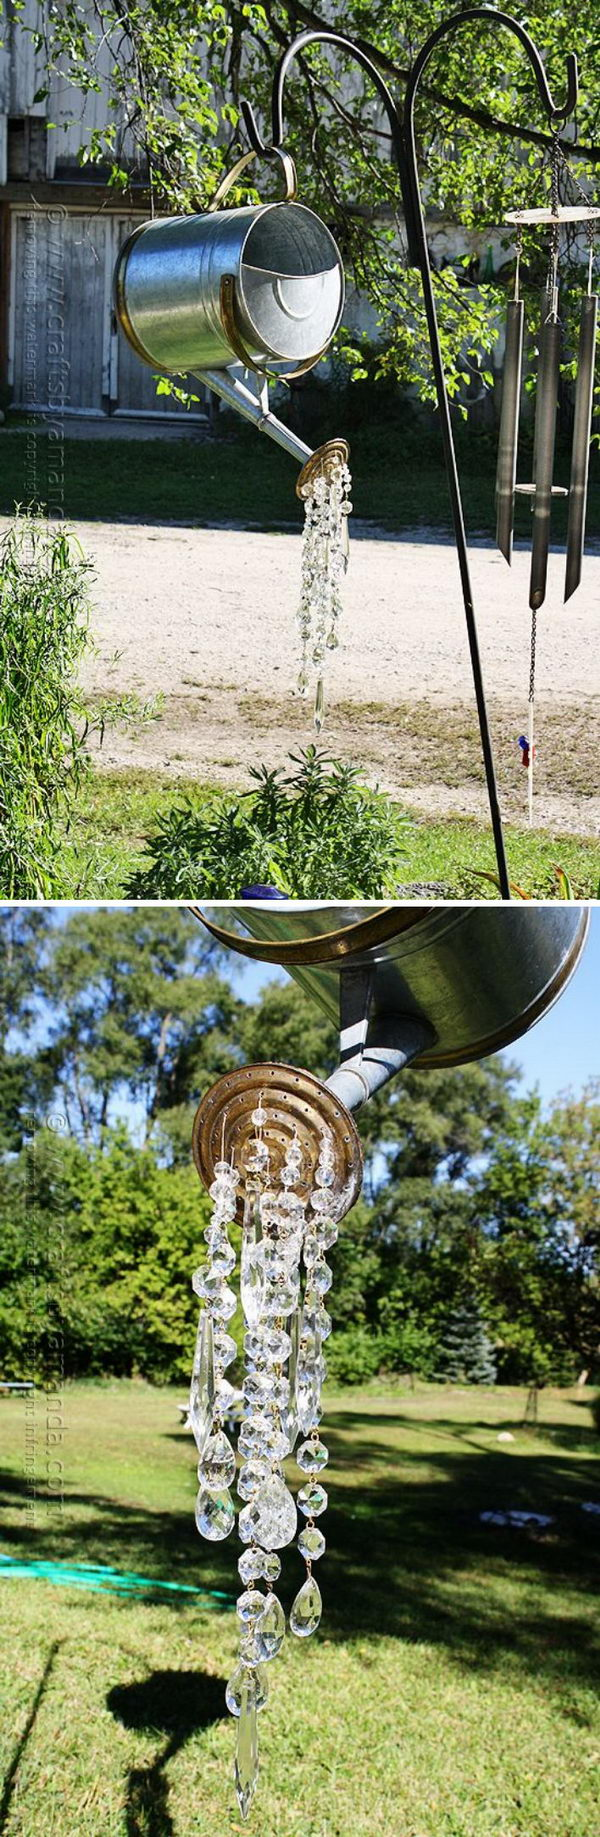 DIY Watering Can Wind Chime That Pours Crystals.